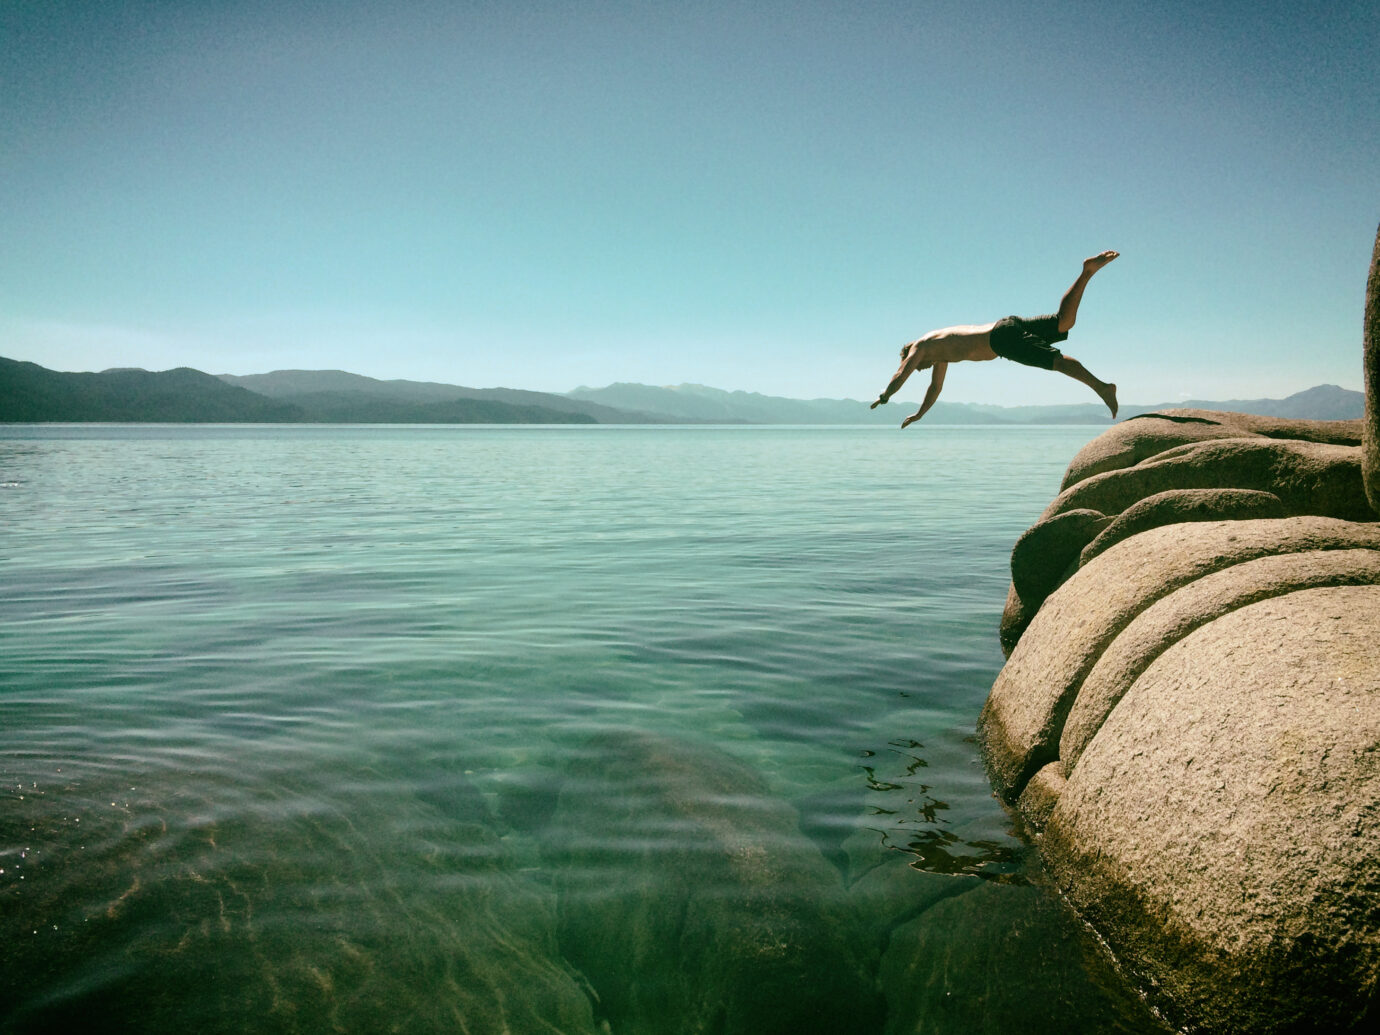 Man diving off rocks into Lake Tahoe